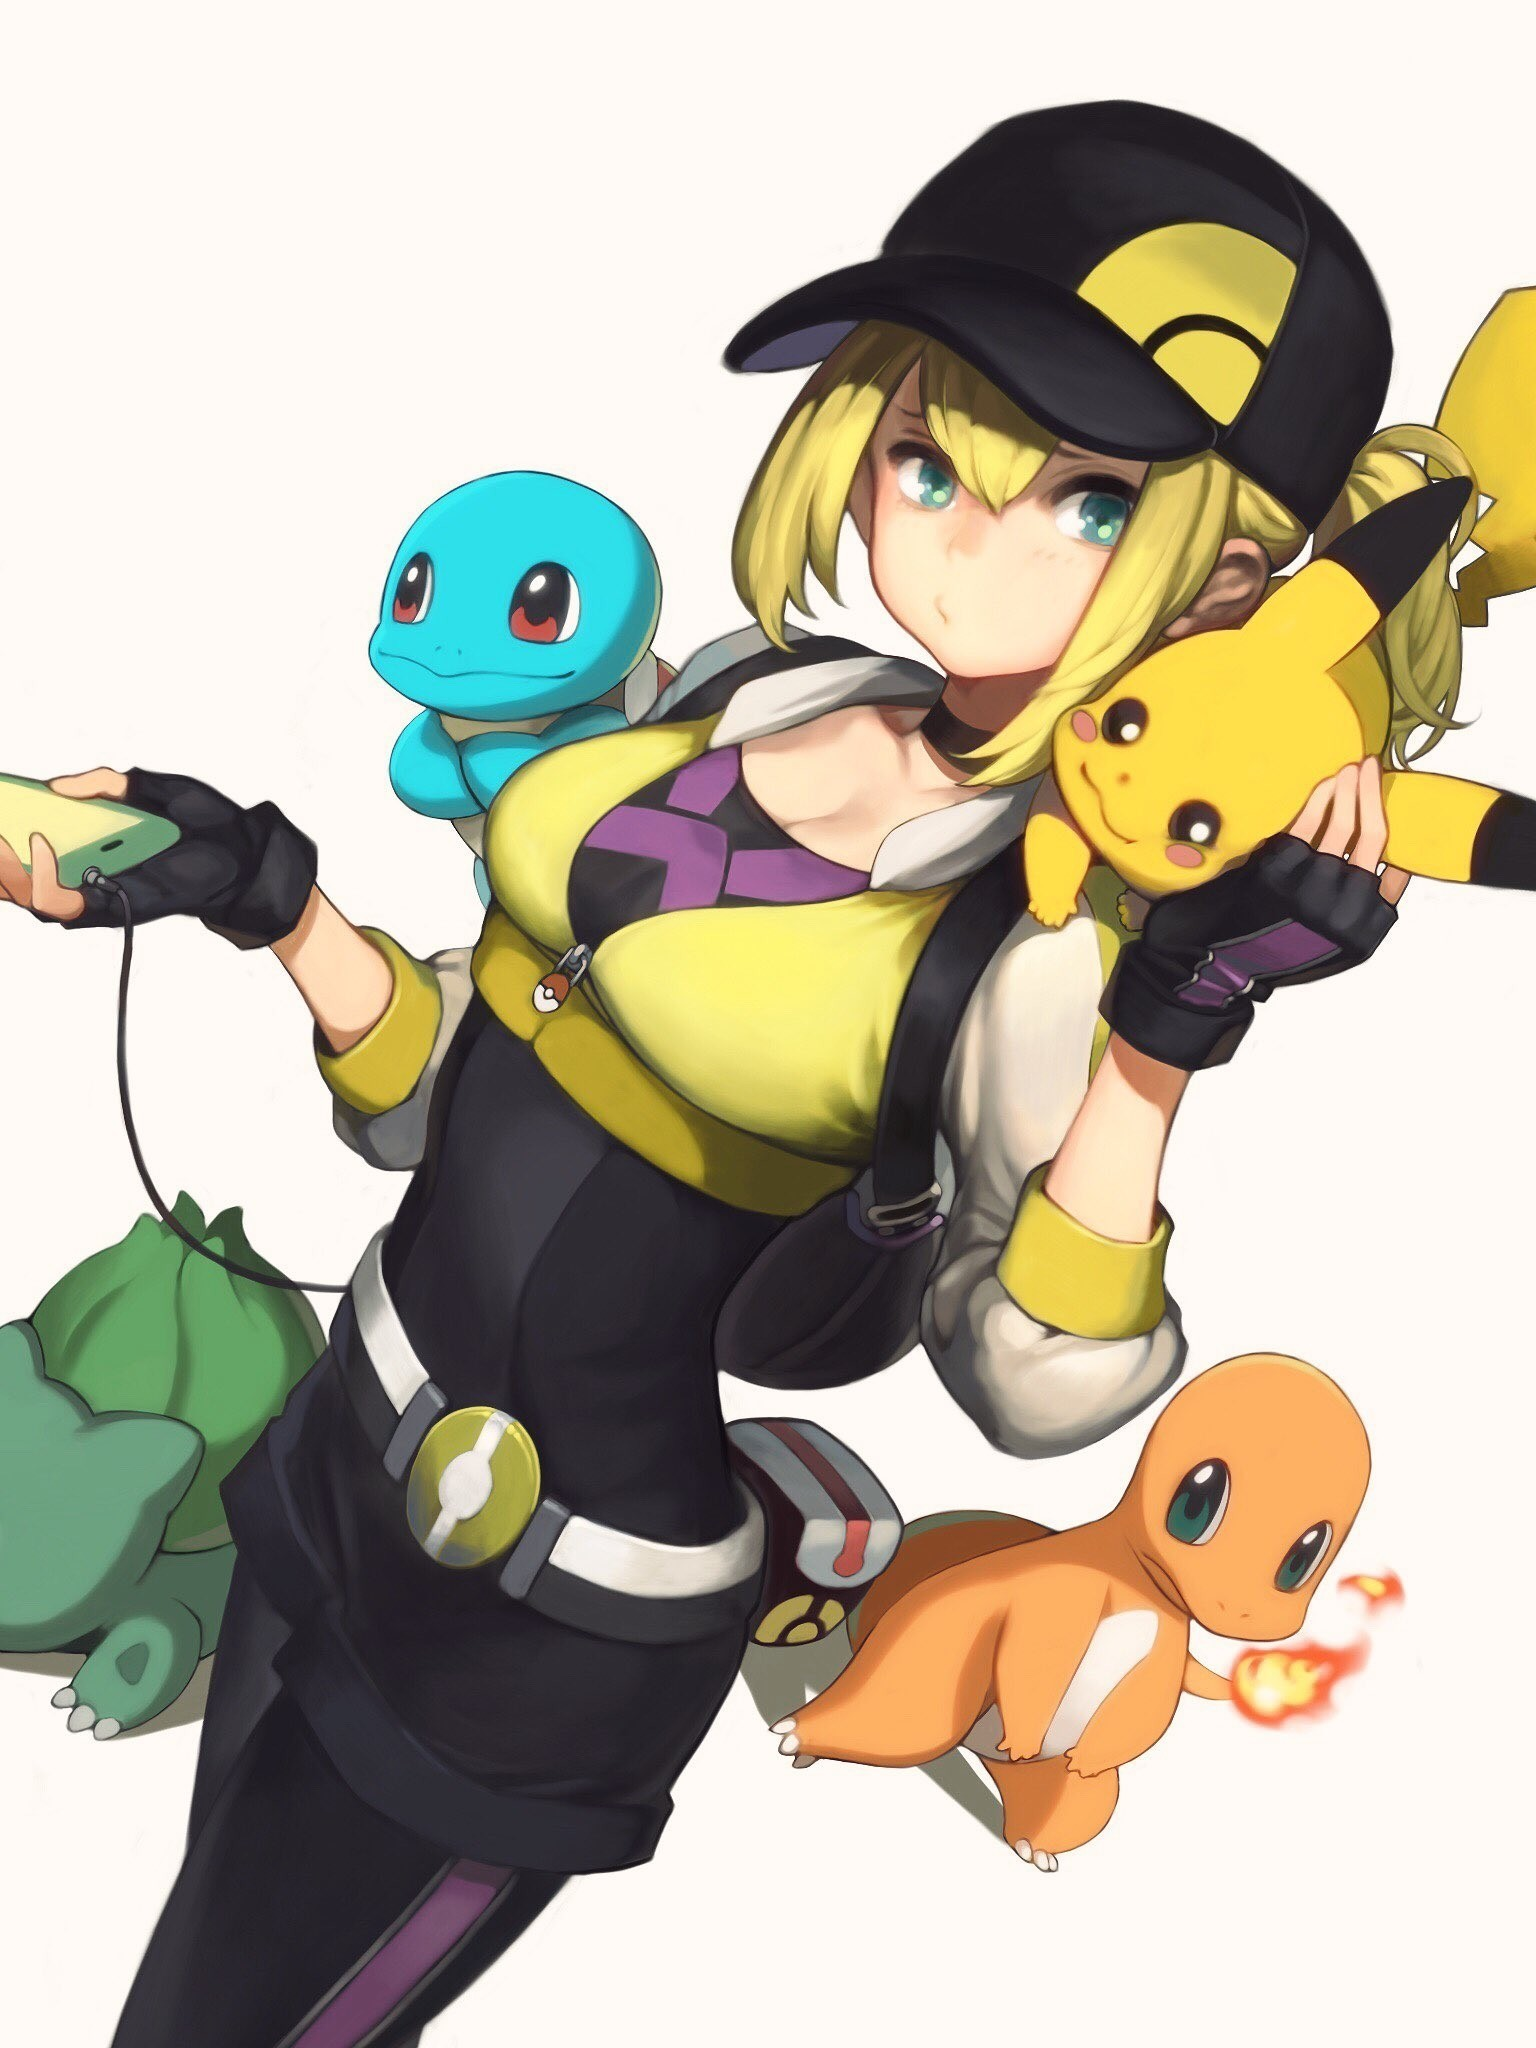 Res: 1536x2048, Lillie, Pokemon, Charmander, Pikachu, Bulbasaur, Squirtle